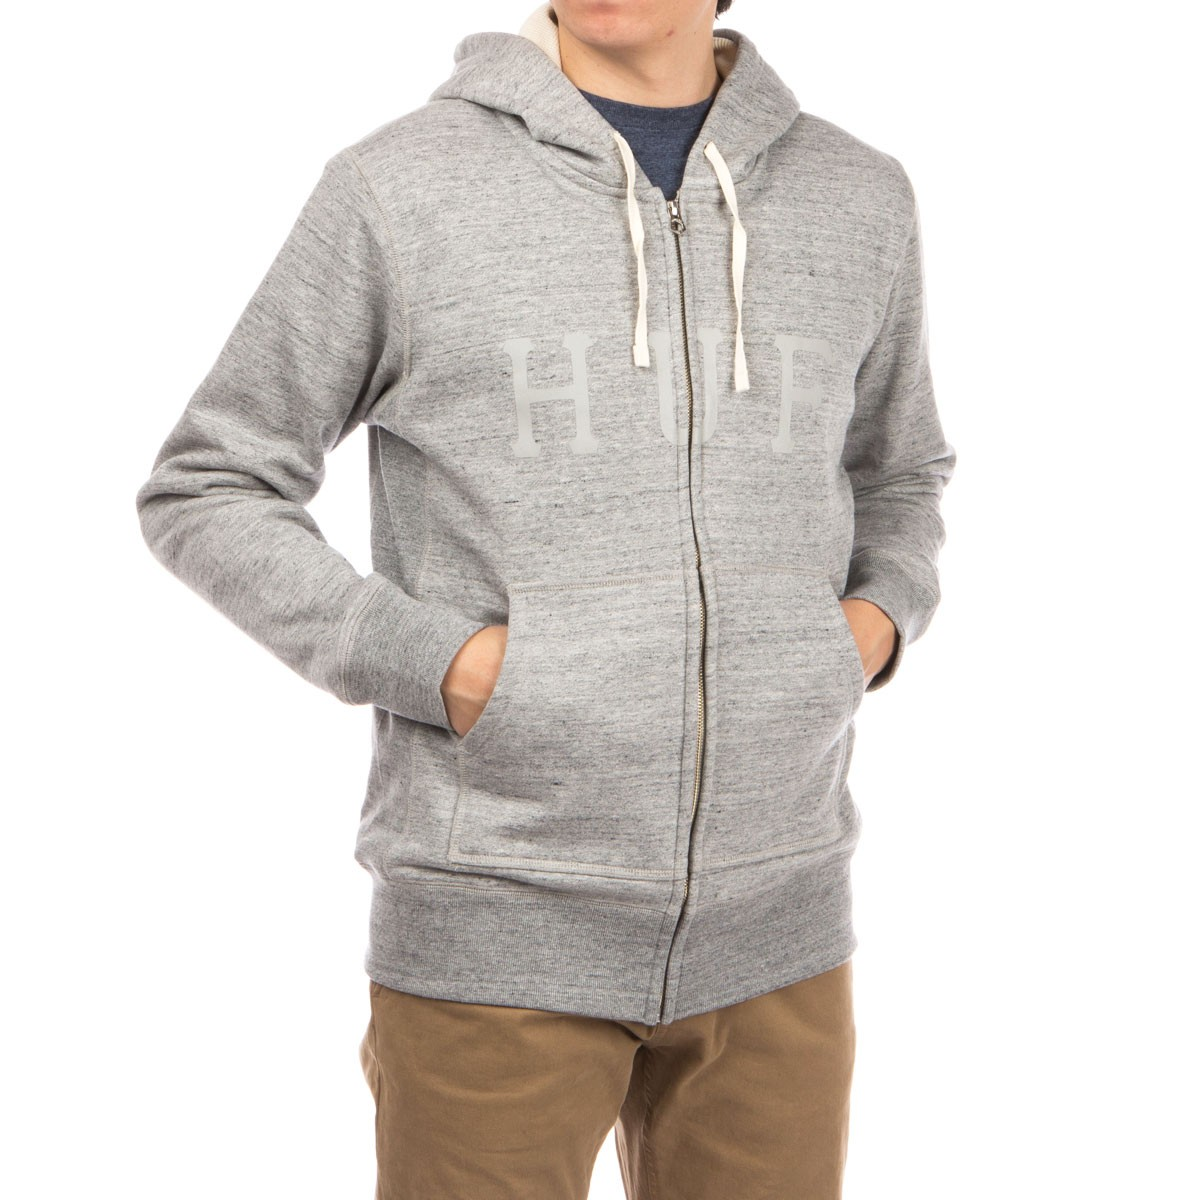 huf-brooks-thermal-zip-up-hoodie-grey-heather-1.1506664035.jpg 332217dfe89